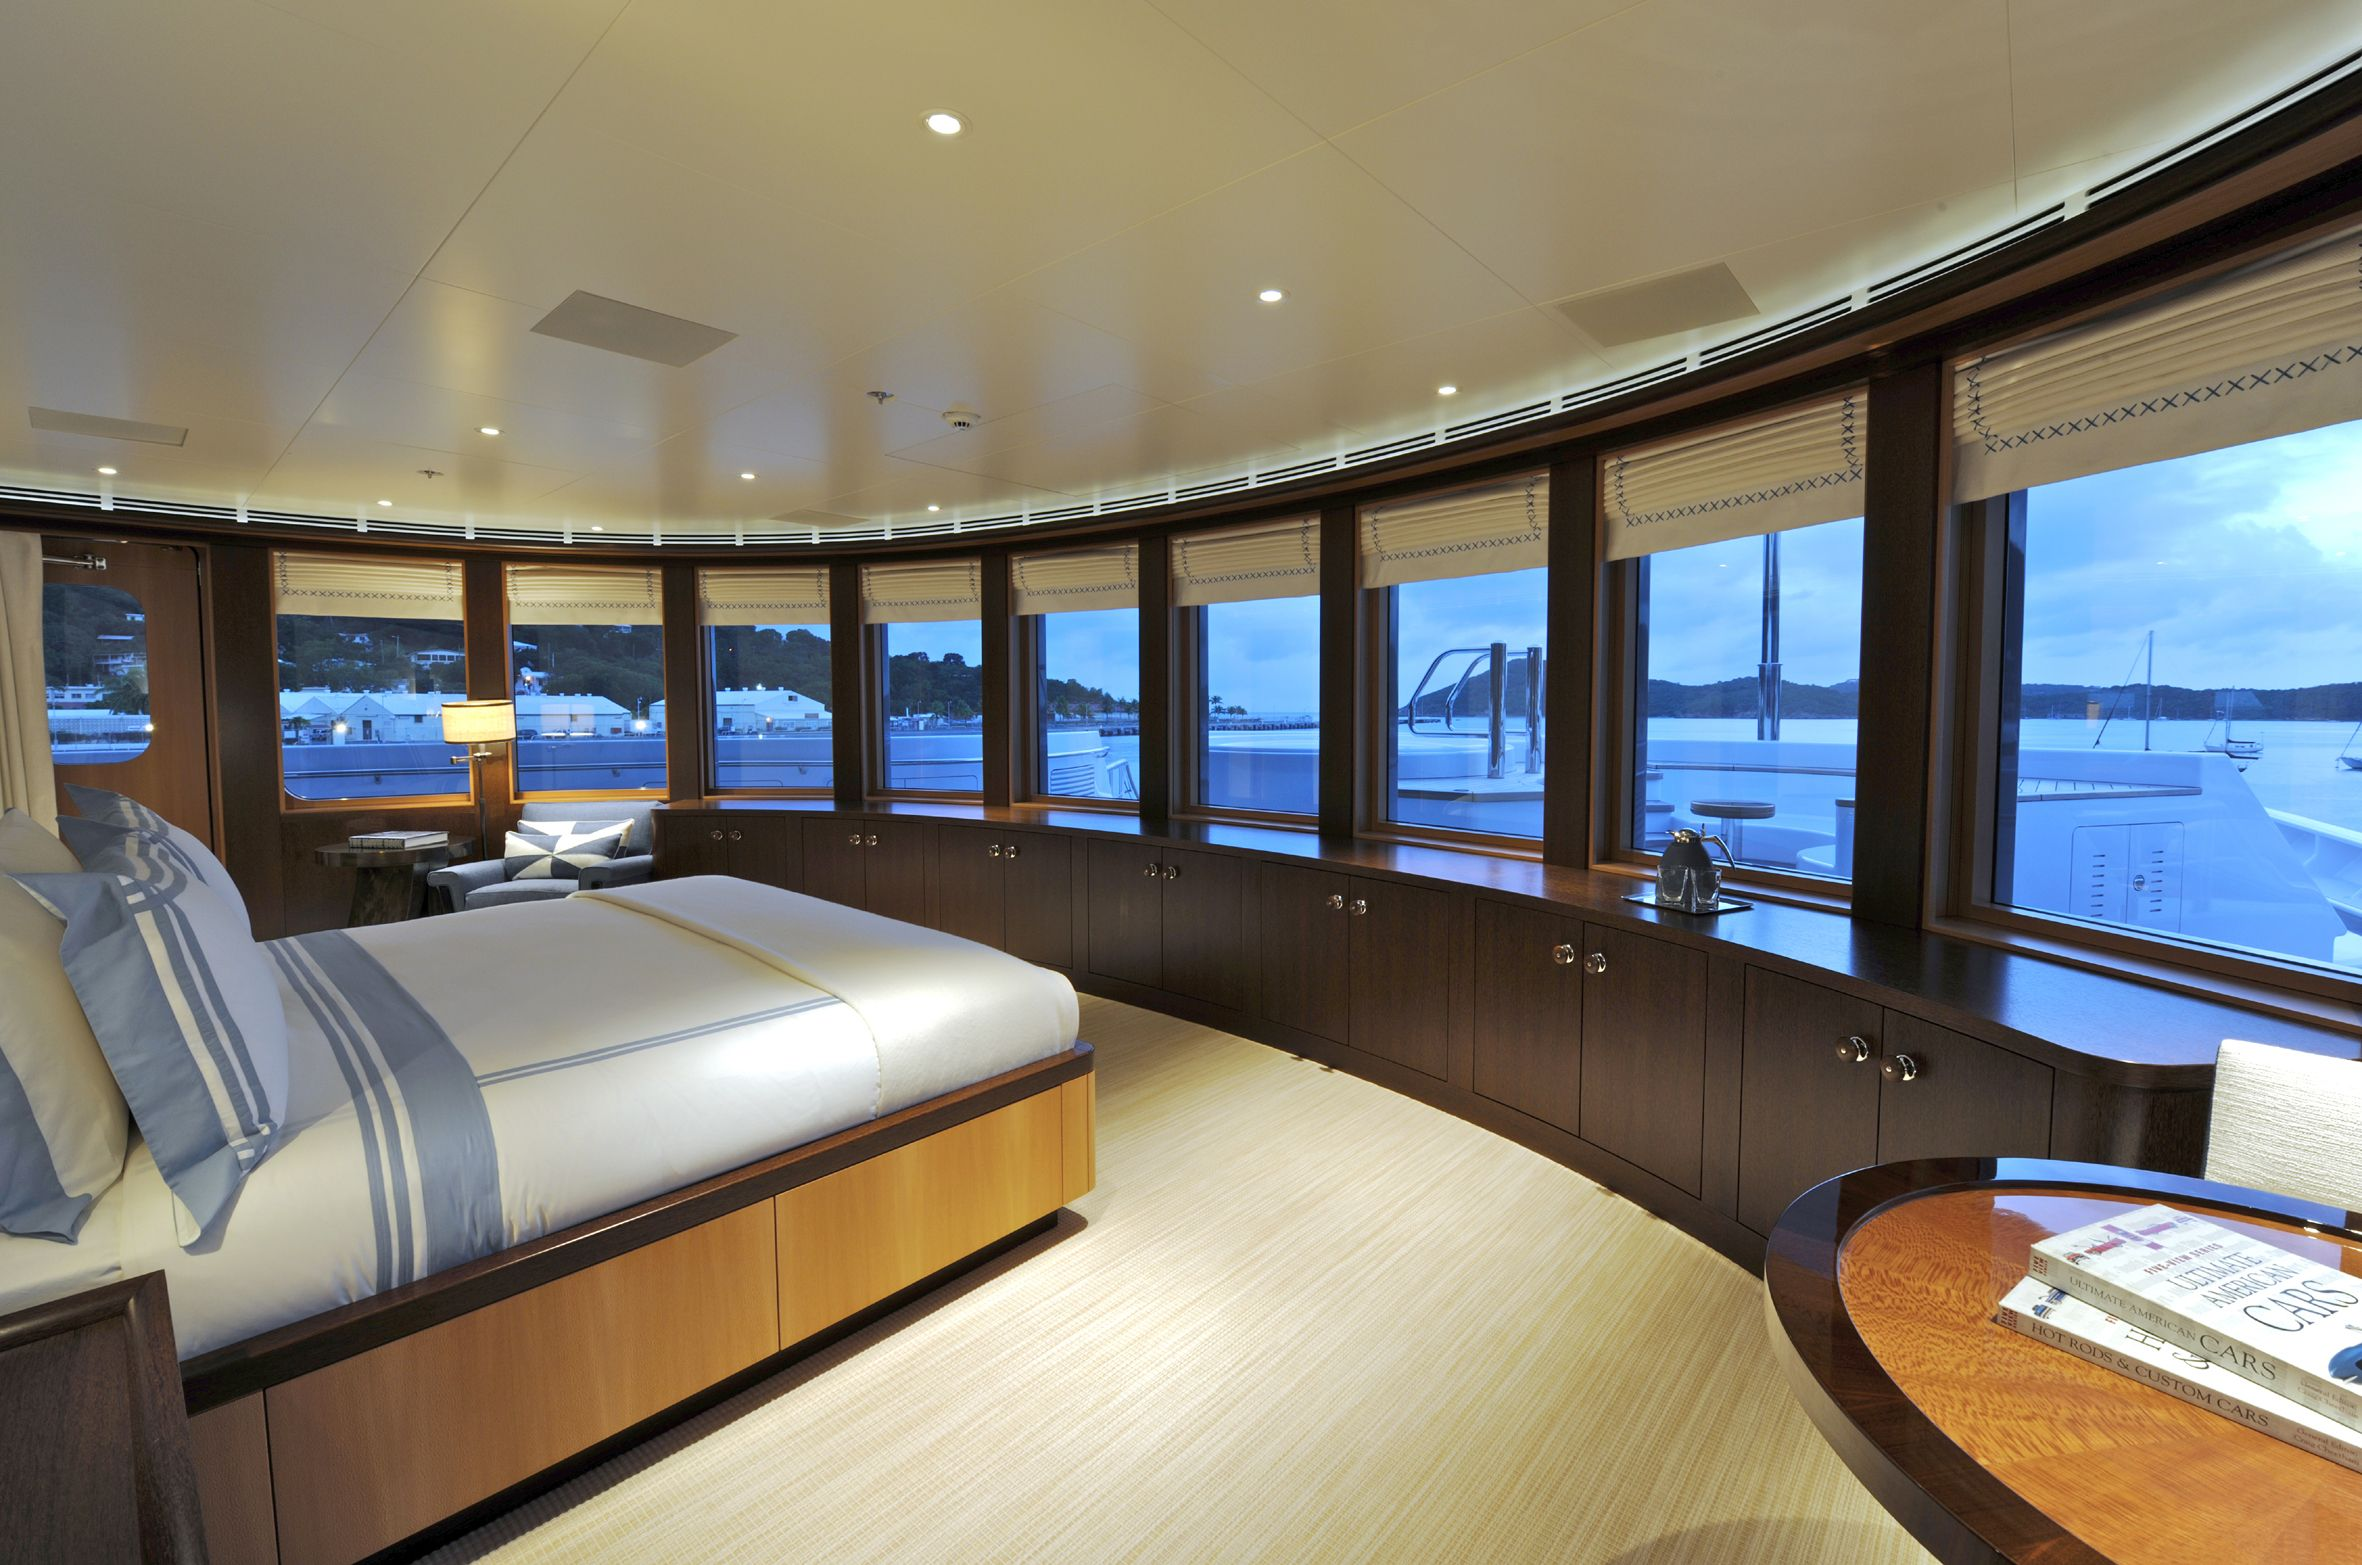 Incredible Bedroom In An Incredible Luxury Yacht